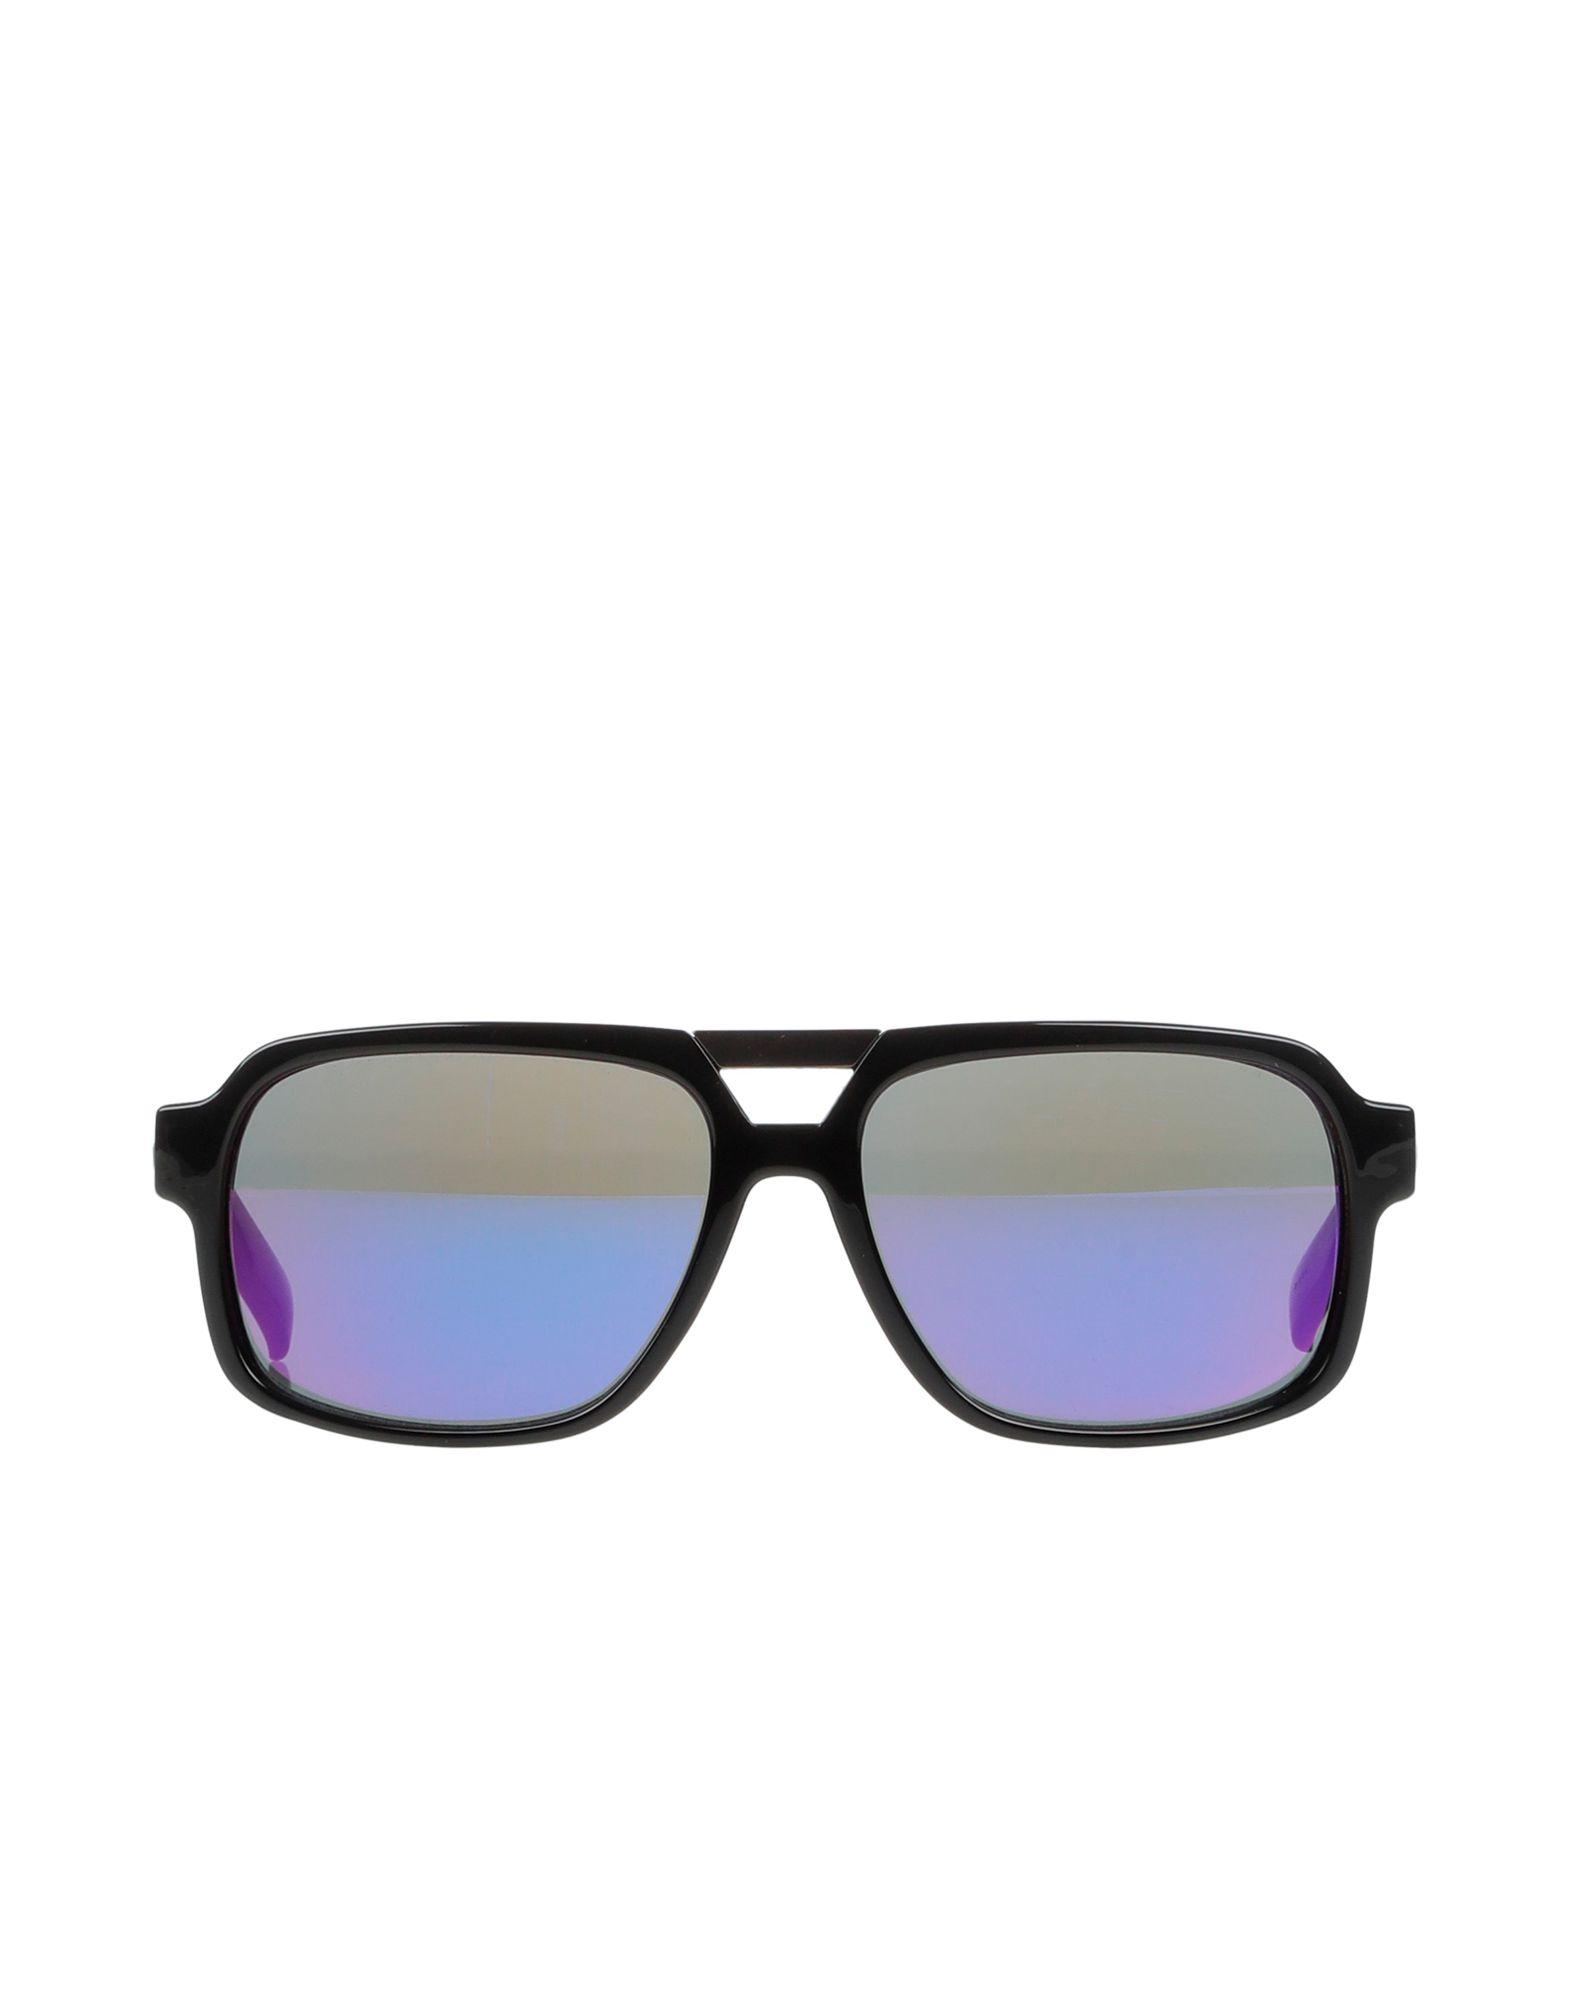 946064bac9684 Guess Sunglasses in Black for Men - Lyst